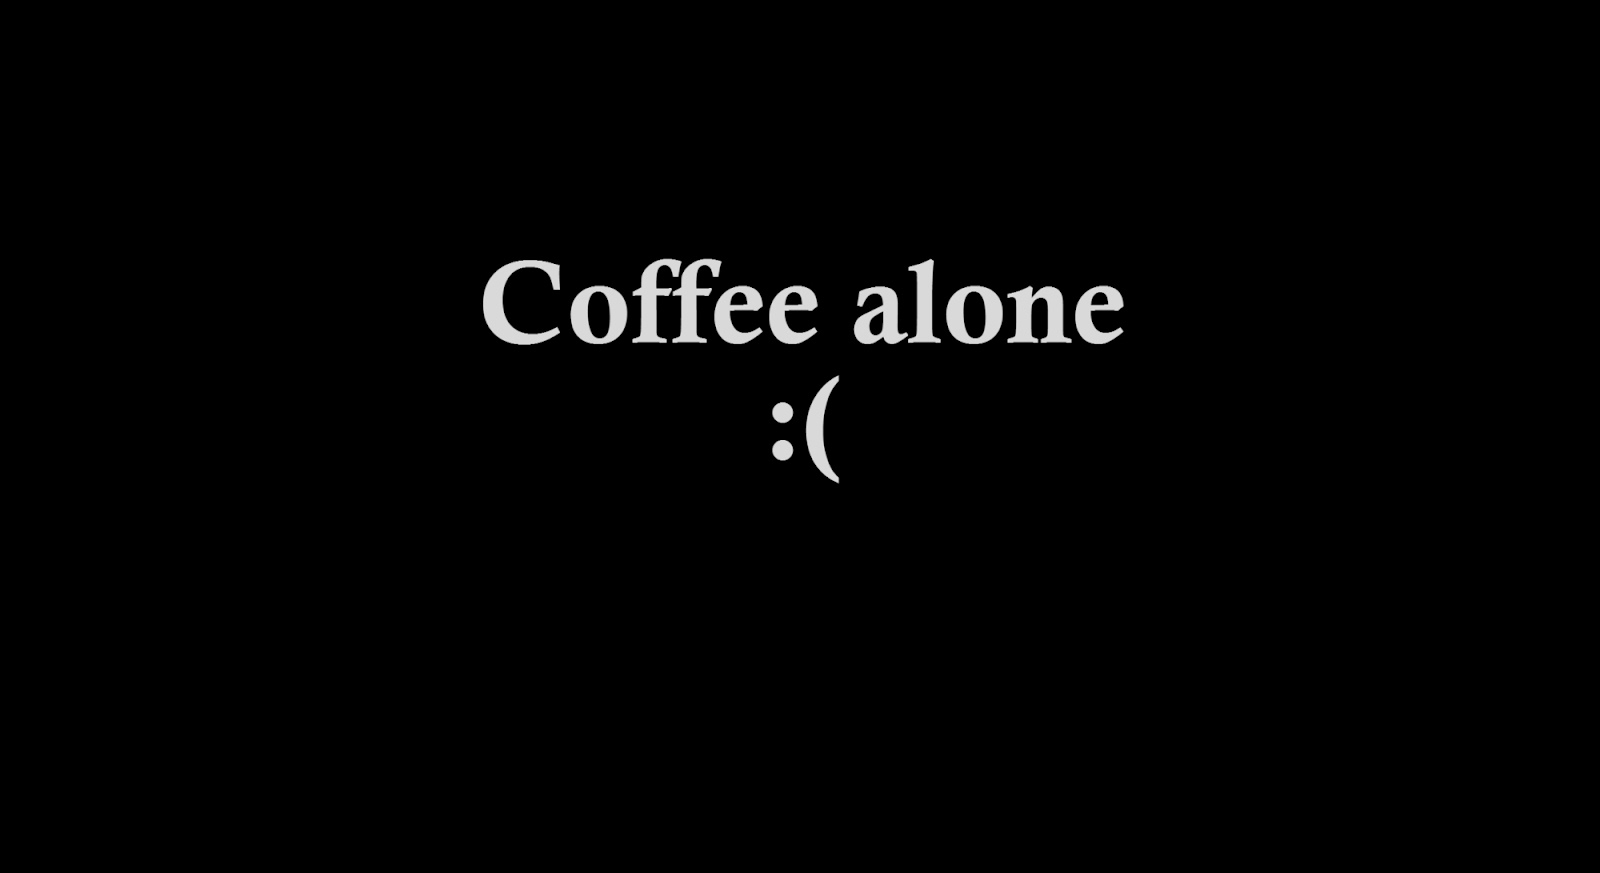 Coffee alone